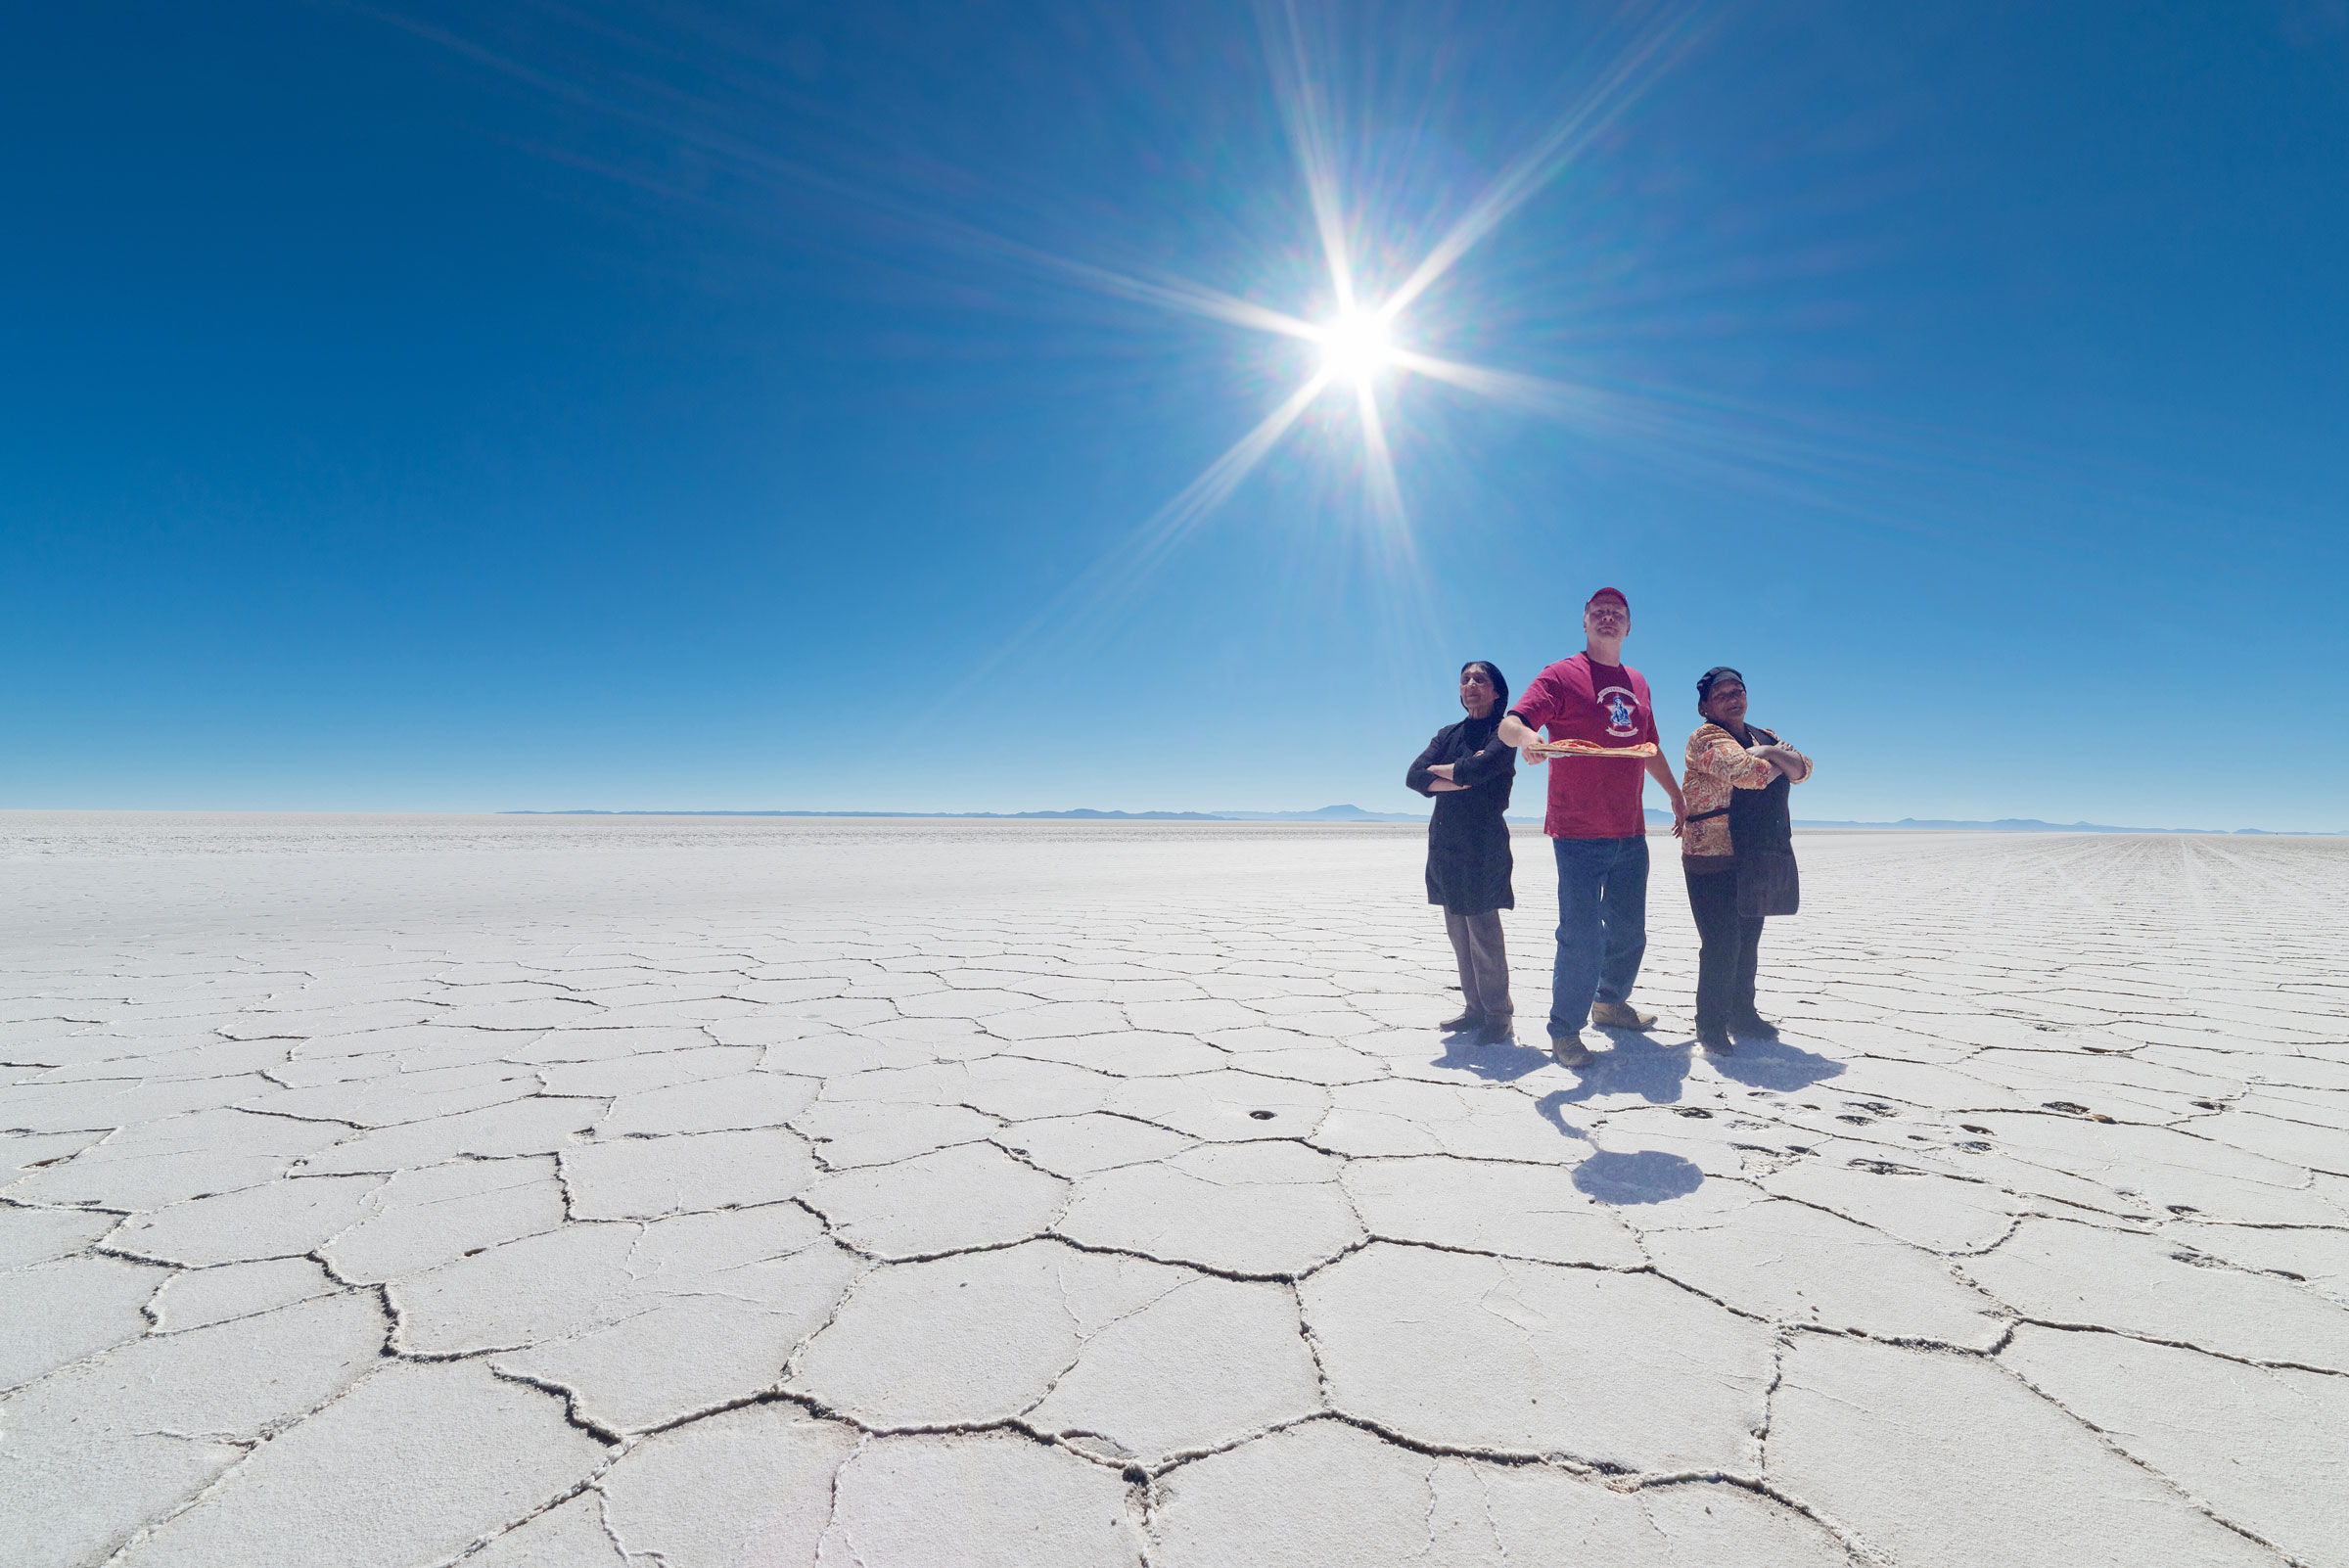 Chris Sarage, owner of Minuteman Pizza, is pictured in the Uyuni Salt Flats in Bolivia.